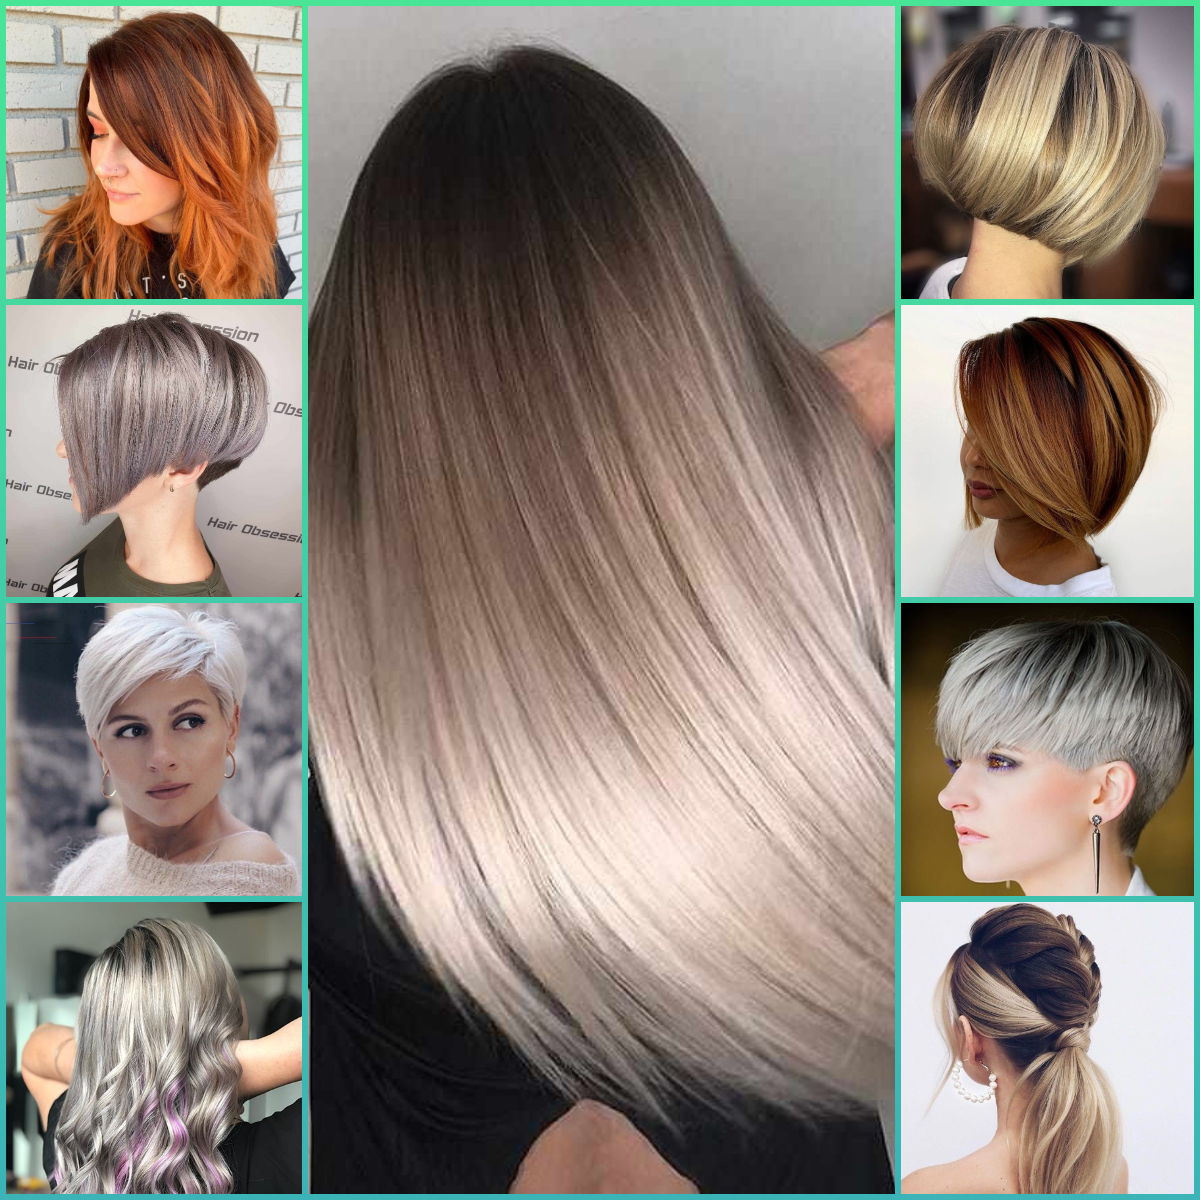 Today 35 Women Formal Haircuts 2020 New Bob, Short Pixie & Layered  Hairstyles 2020 Ideas  